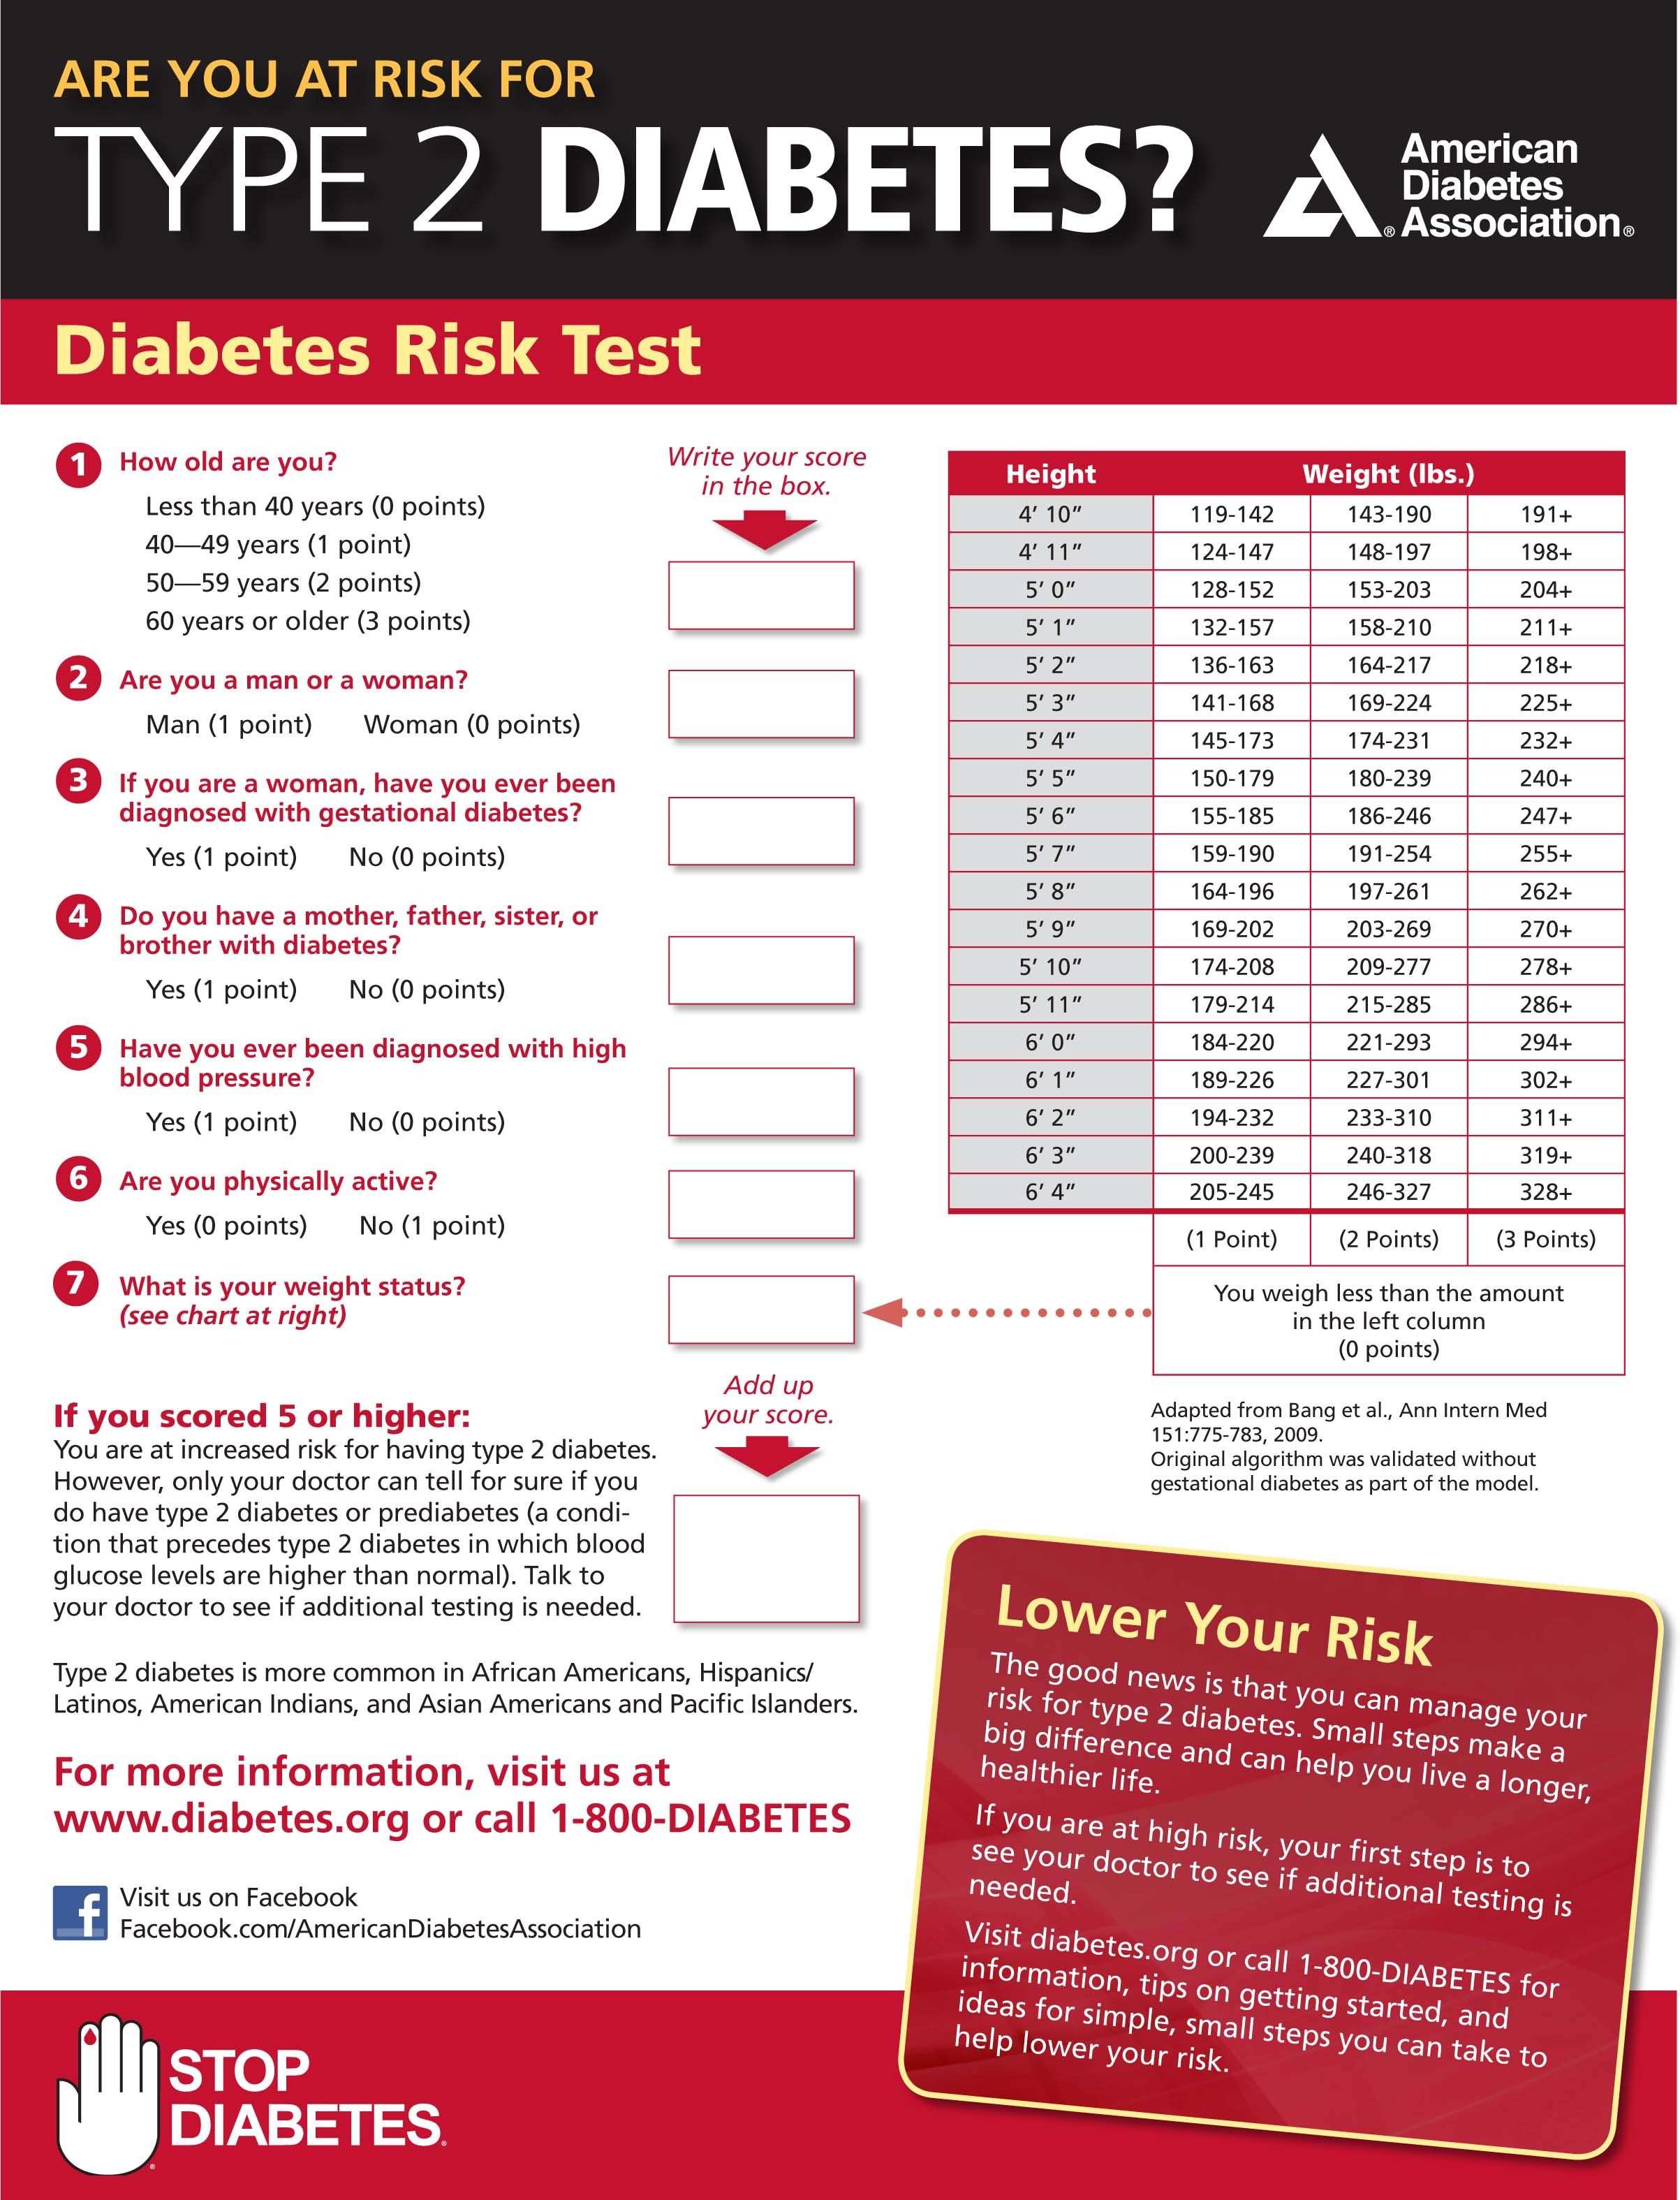 Are you at risk for diabetes? Take this quiz to find out http:/